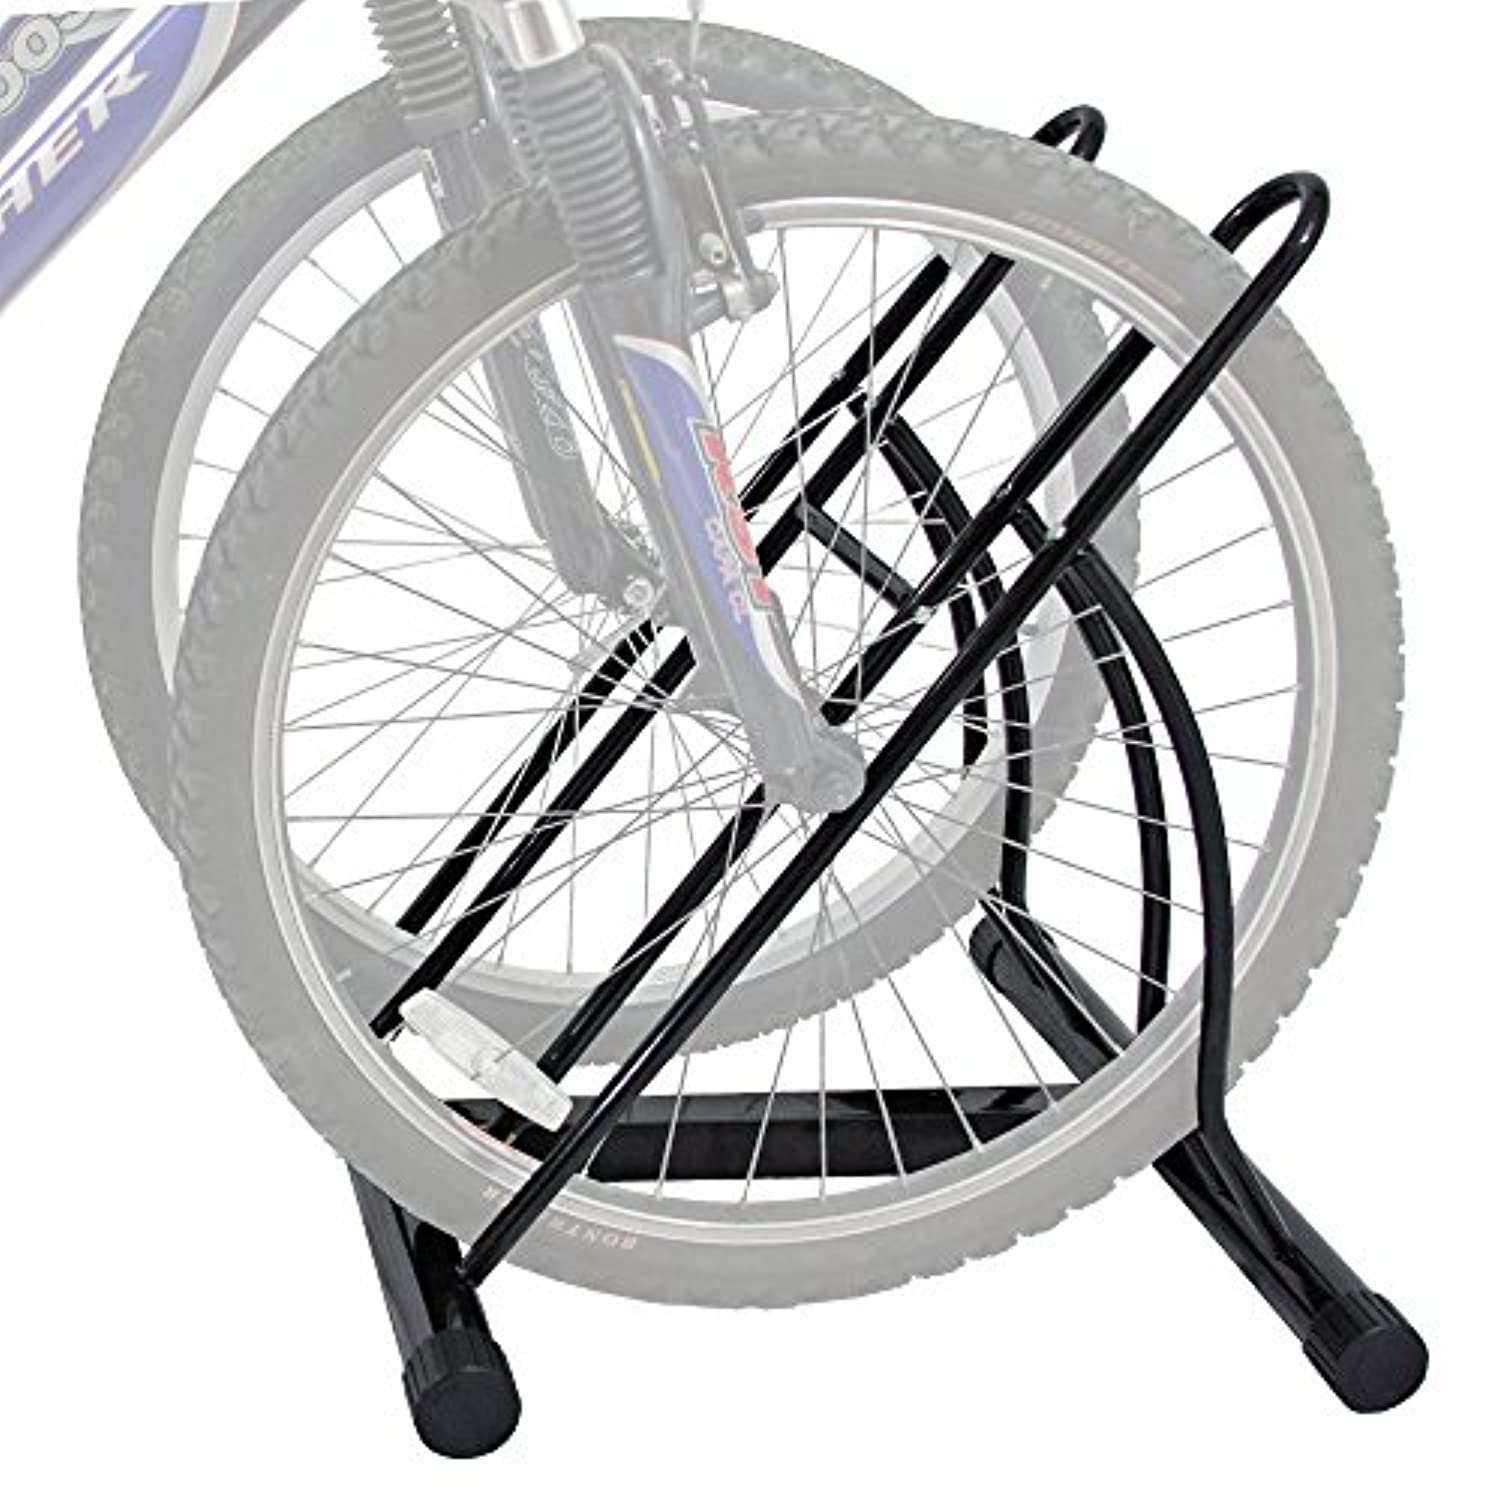 2-Bike Indoor Bicycle Floor Stand by Rage Powersports